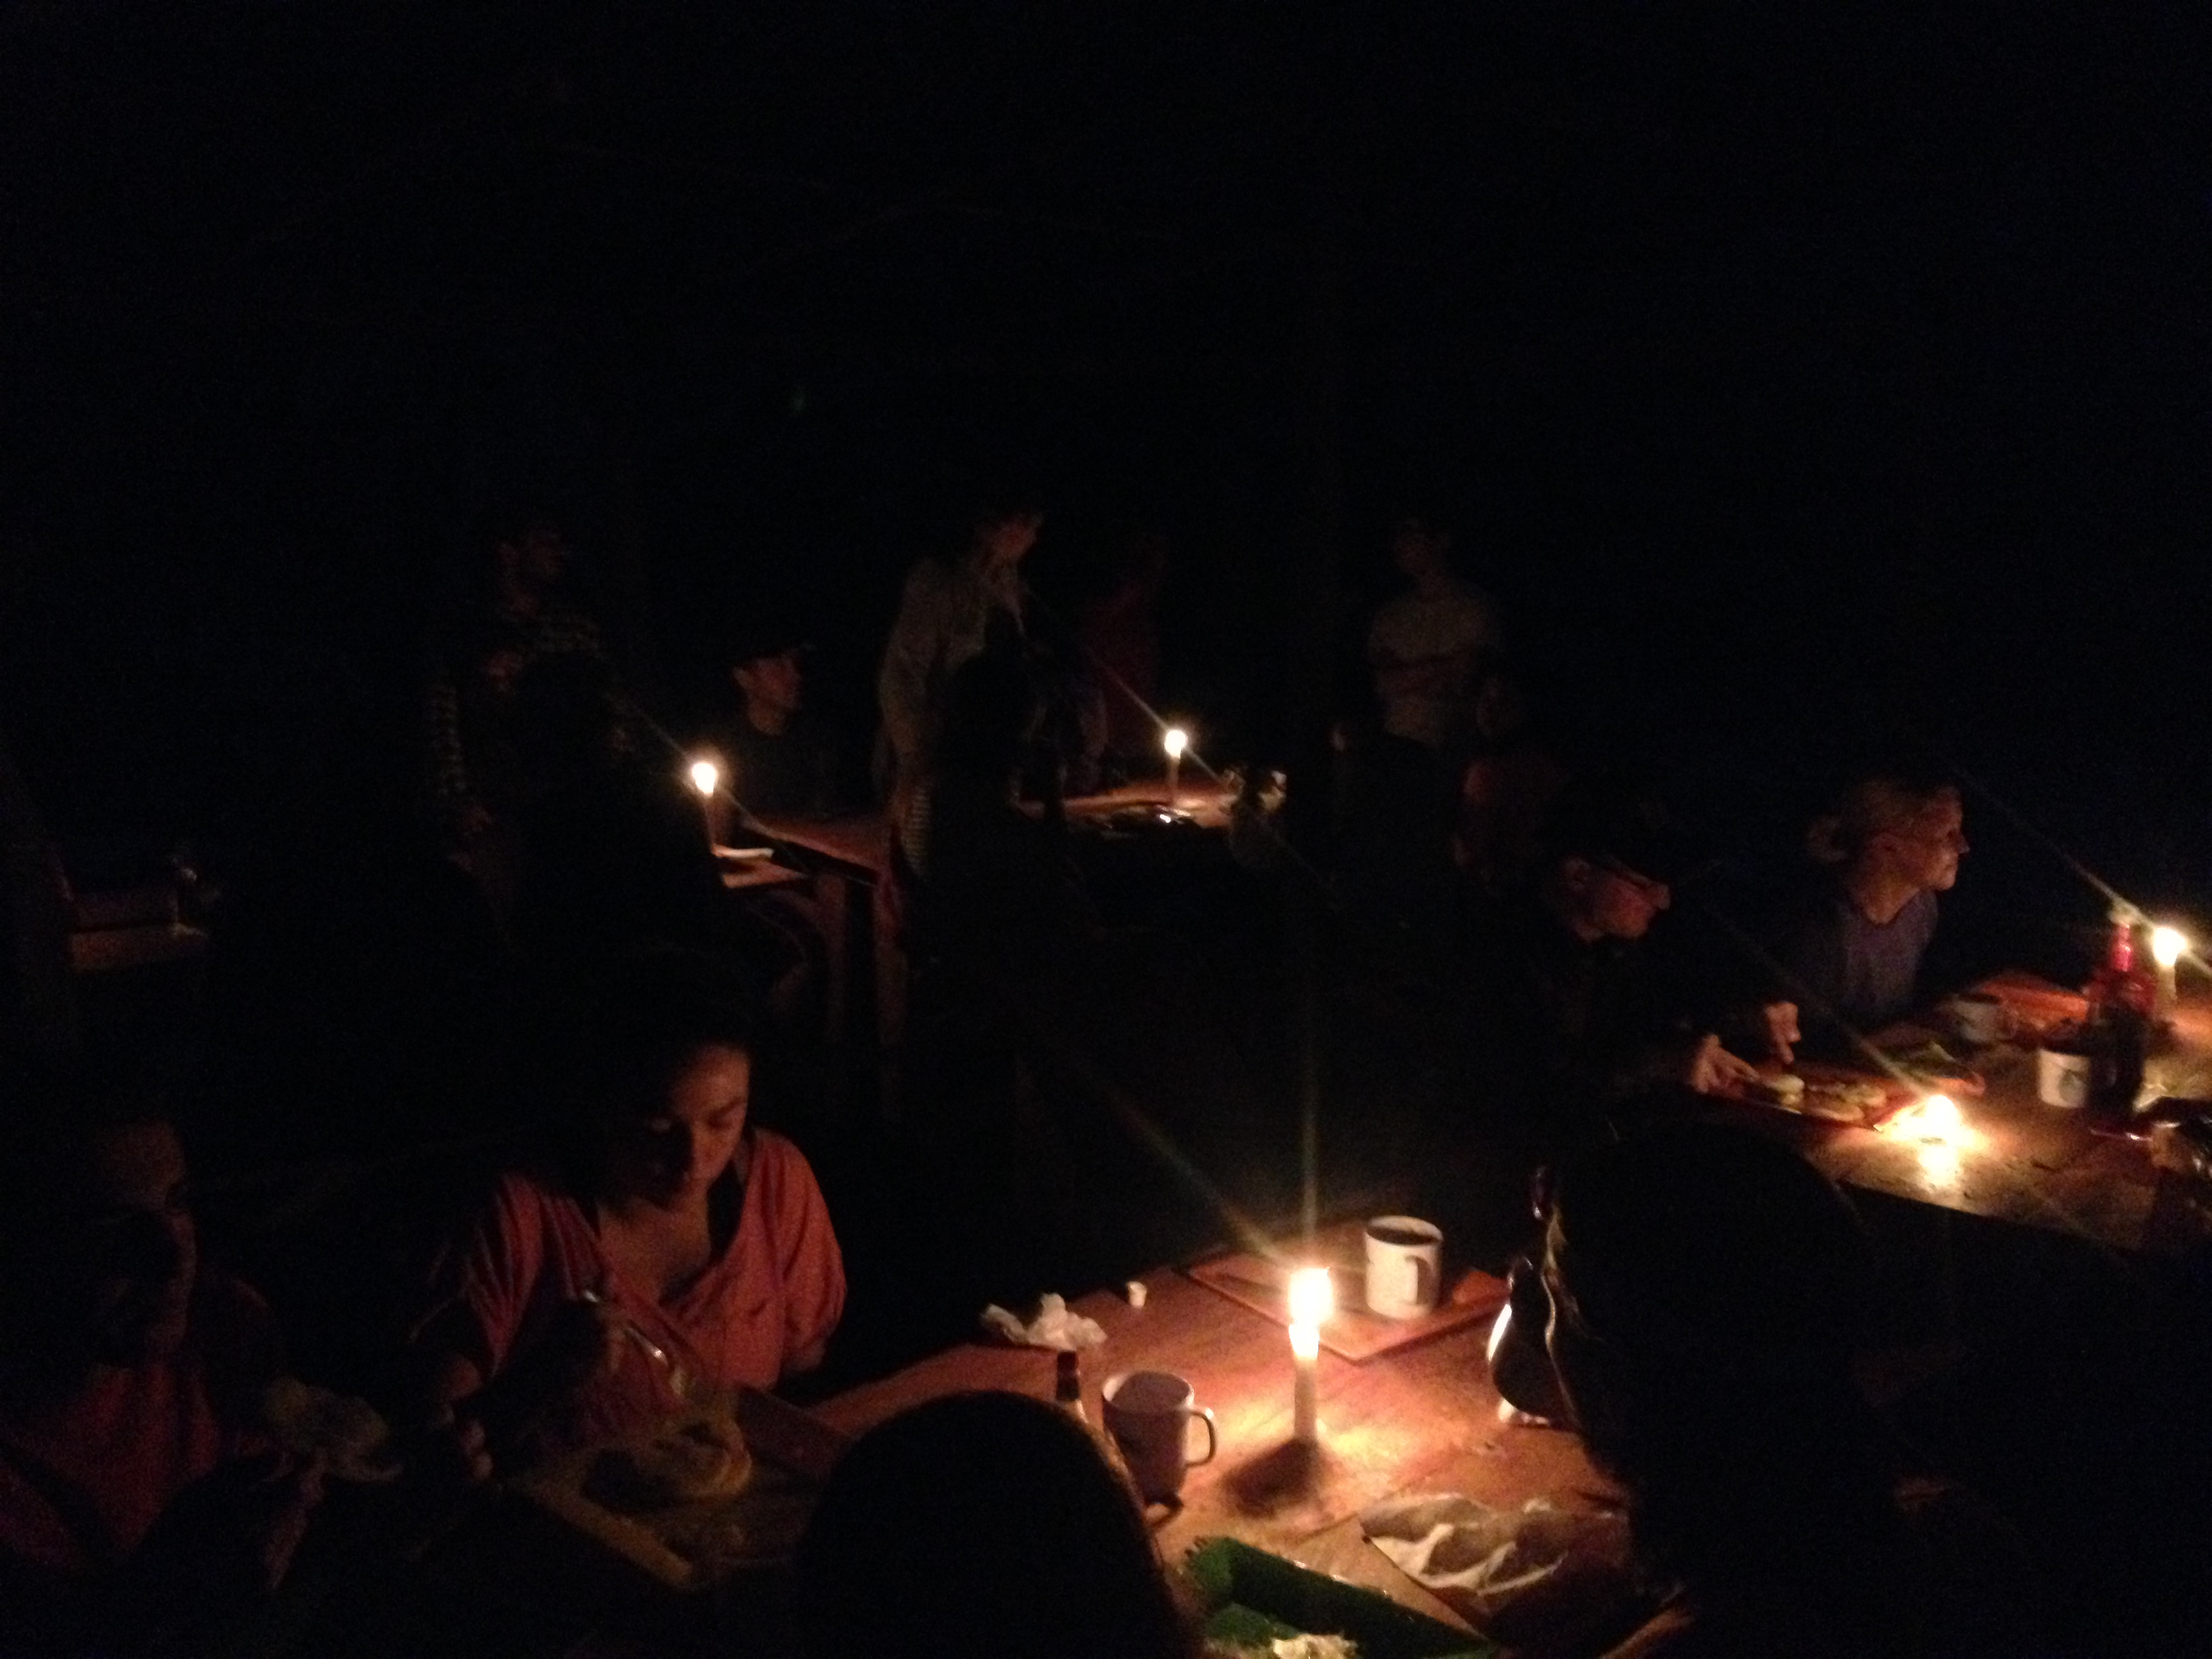 The morning before hiking to Ciudad Perdida, we ate breakfast in the dark - early.